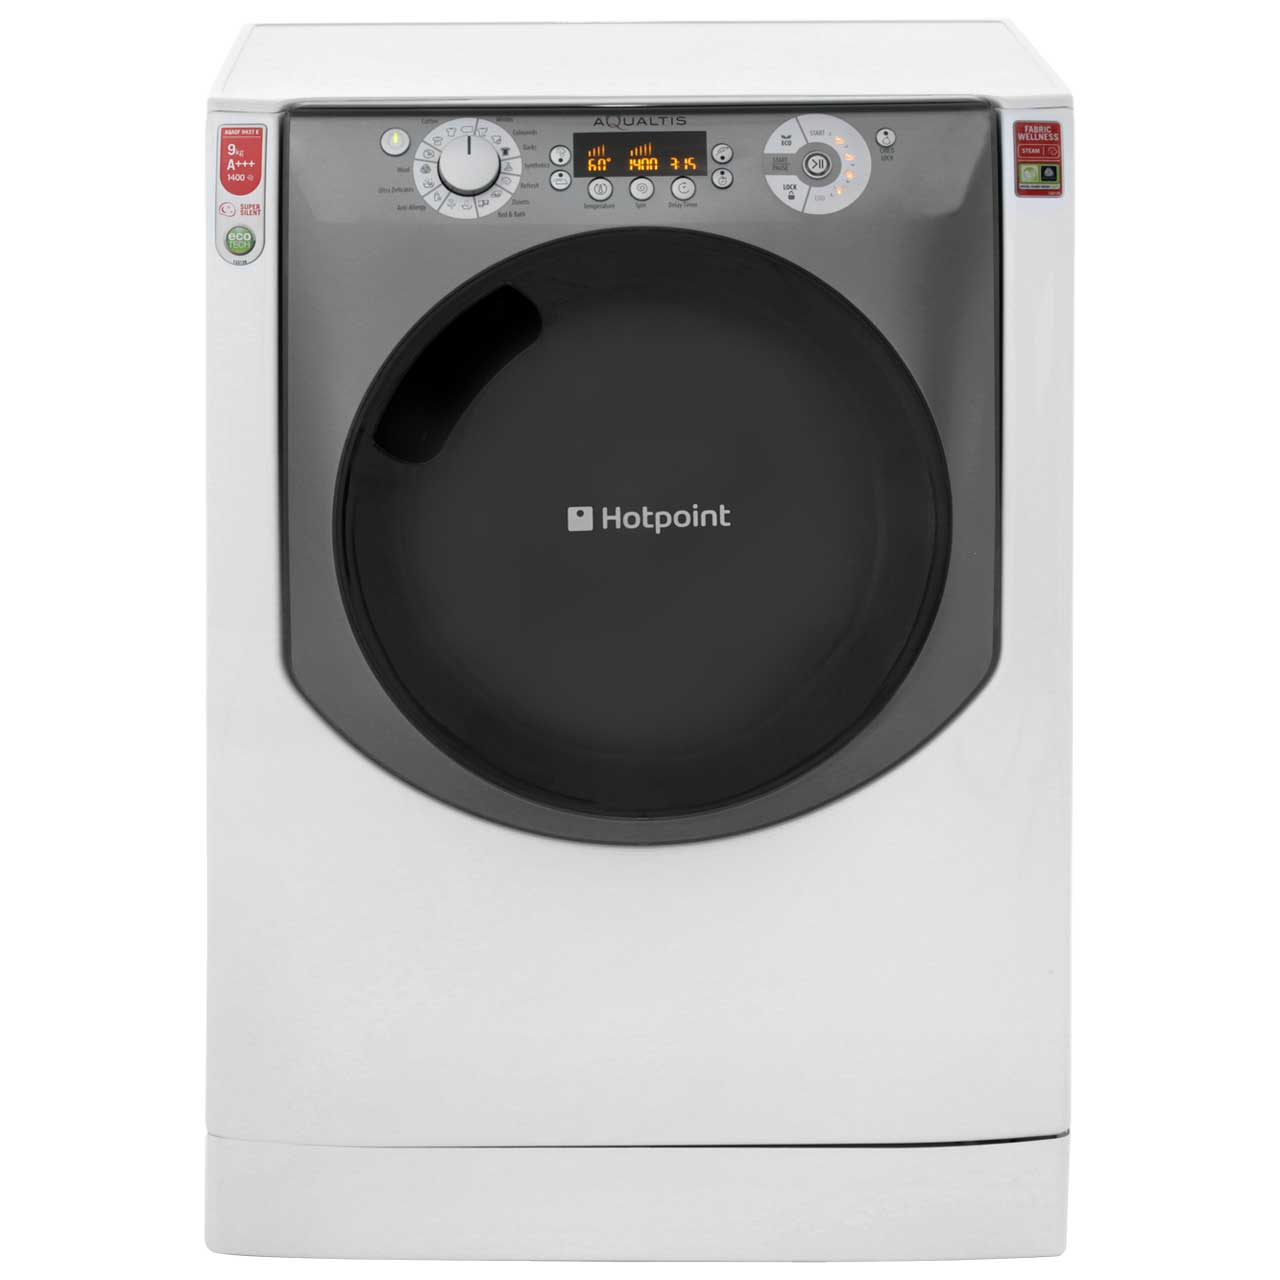 Hotpoint Aqualtis AQAOF9437E Free Standing Washing Machine in Tungsten